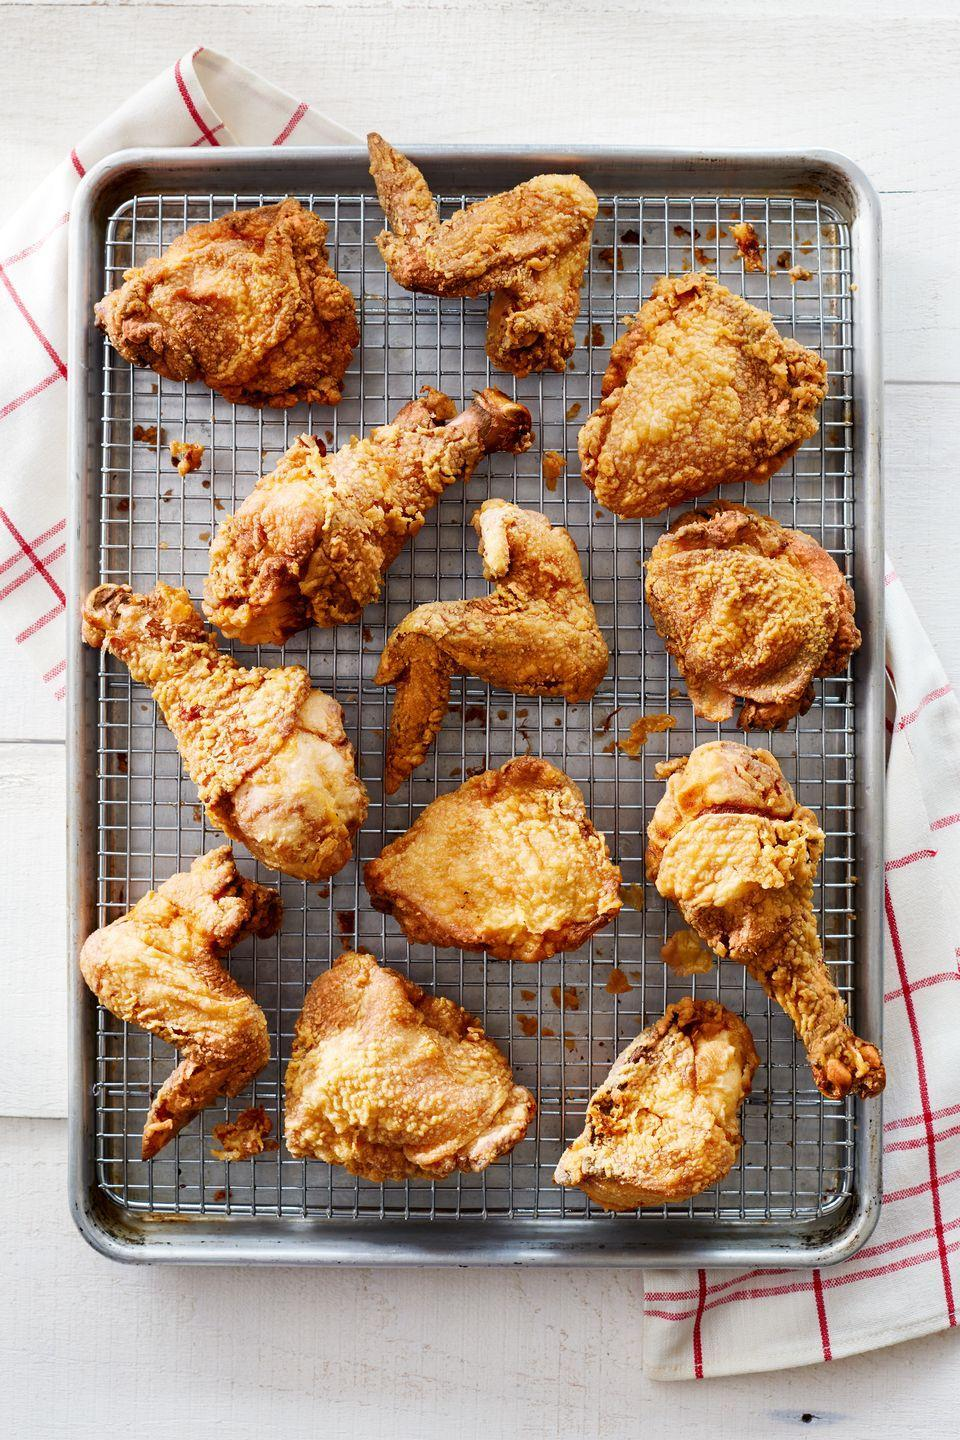 "<p>Finish in the oven to guarantee perfectly cooked chicken and a golden crust.</p><p><strong><a href=""https://www.countryliving.com/food-drinks/recipes/a35600/classic-buttermilk-fried-chicken/"" rel=""nofollow noopener"" target=""_blank"" data-ylk=""slk:Get the recipe."" class=""link rapid-noclick-resp"">Get the recipe.</a></strong></p>"